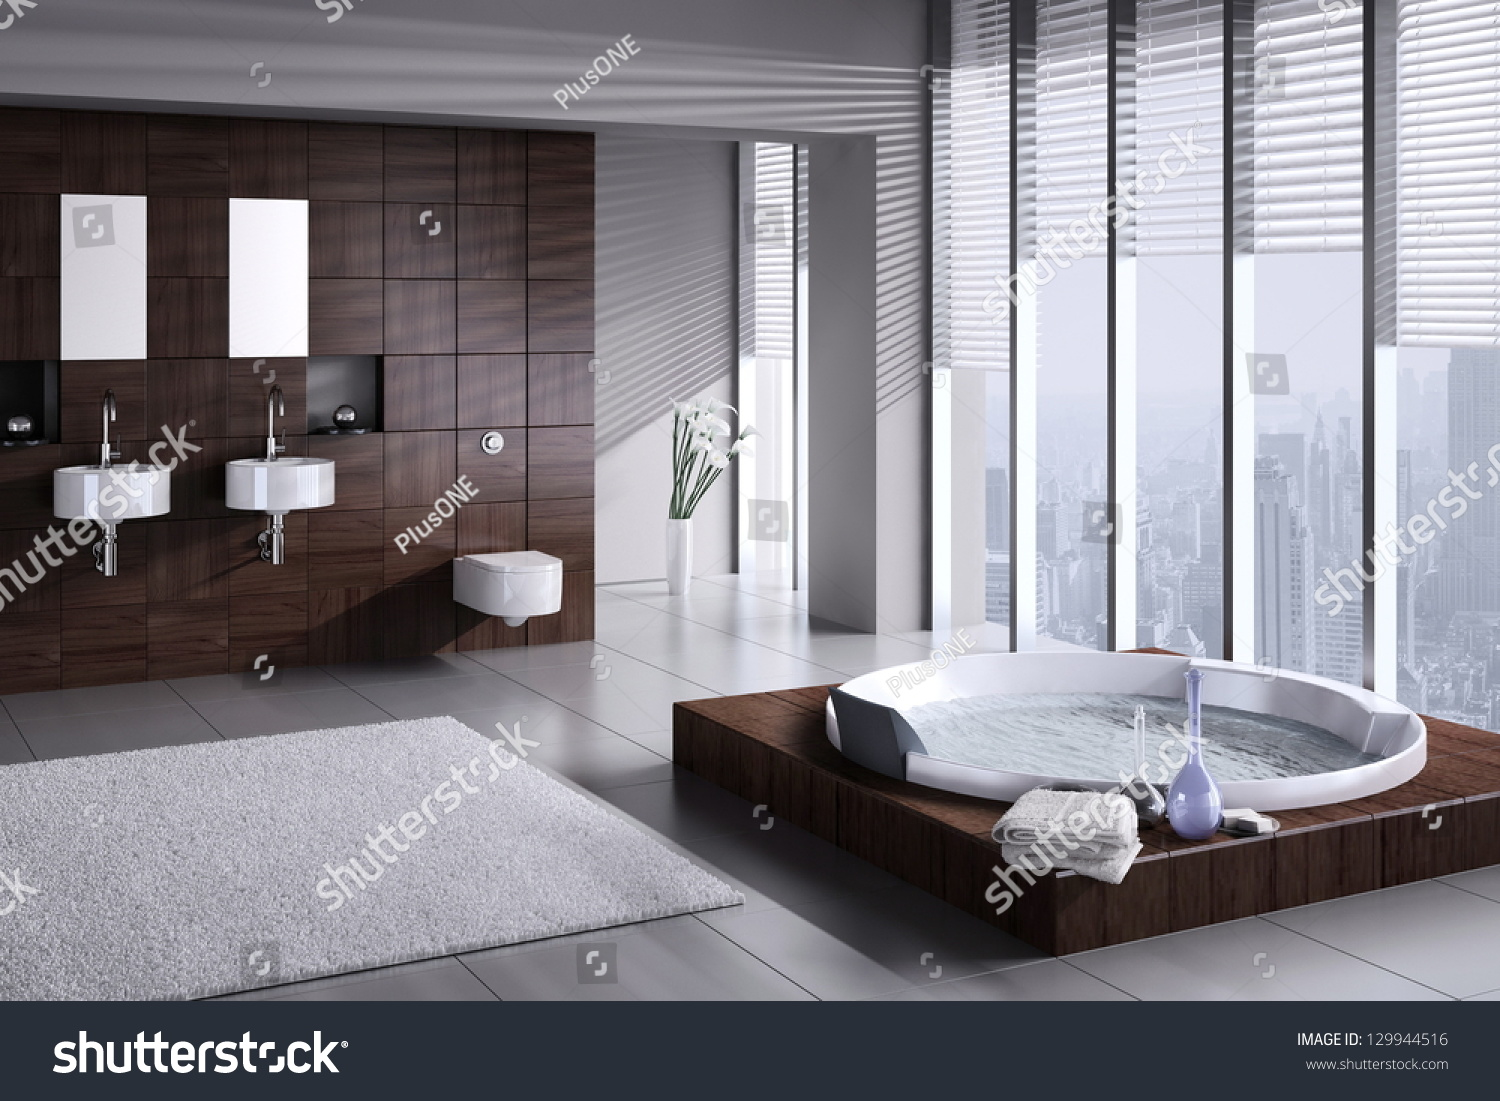 stock-photo-a-d-rendering-of-modern-bathroom-with-double-basin-and-jacuzzi-129944516